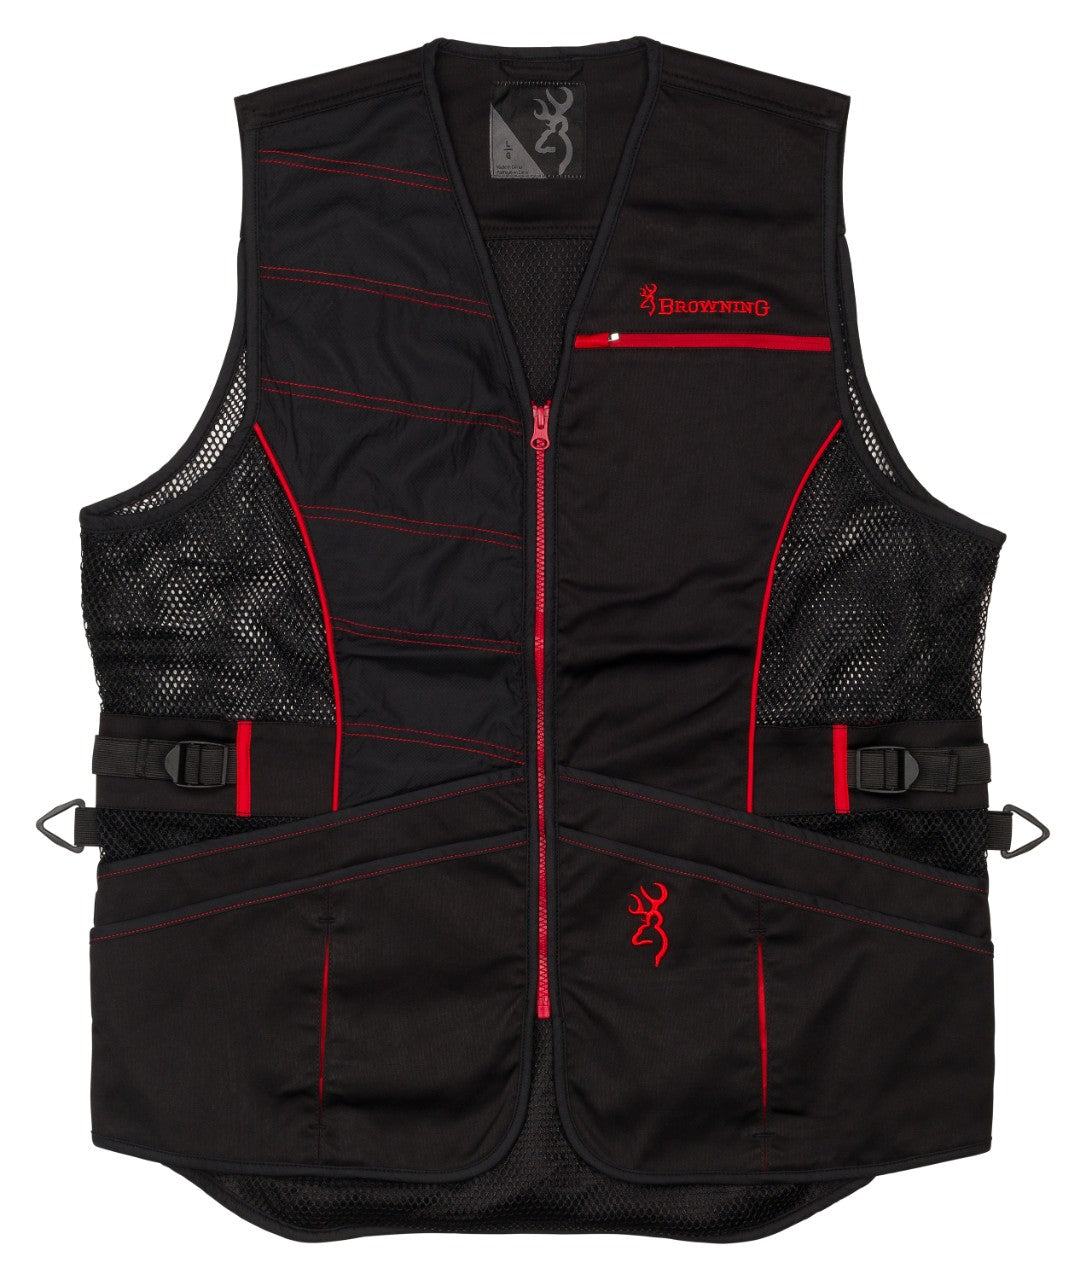 VST ACE SHOOTING BLACK/RED,M